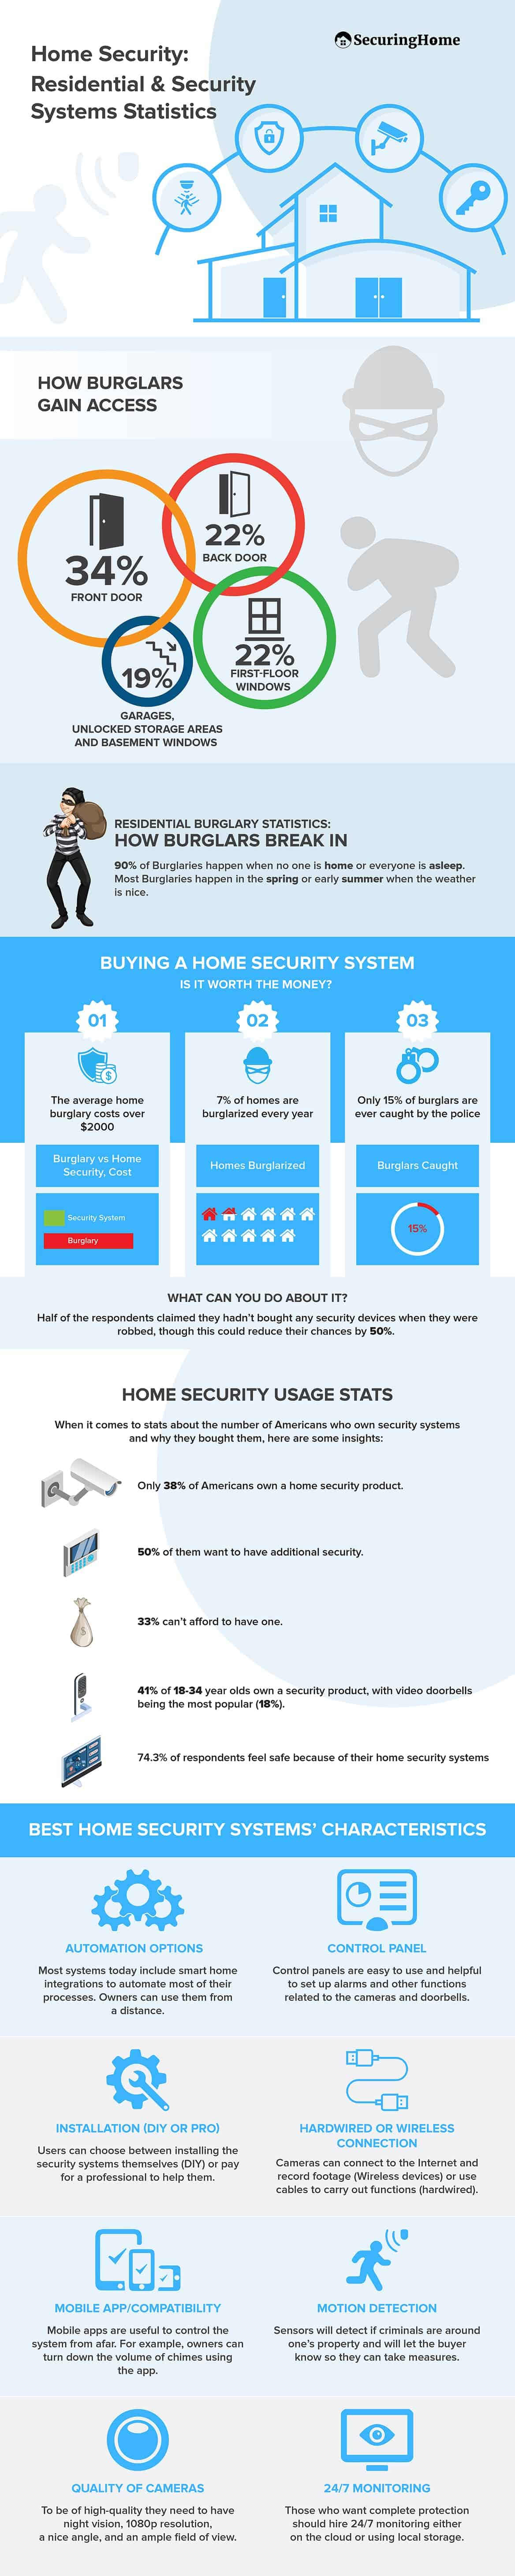 Home Security Residential & Security Systems Statistics